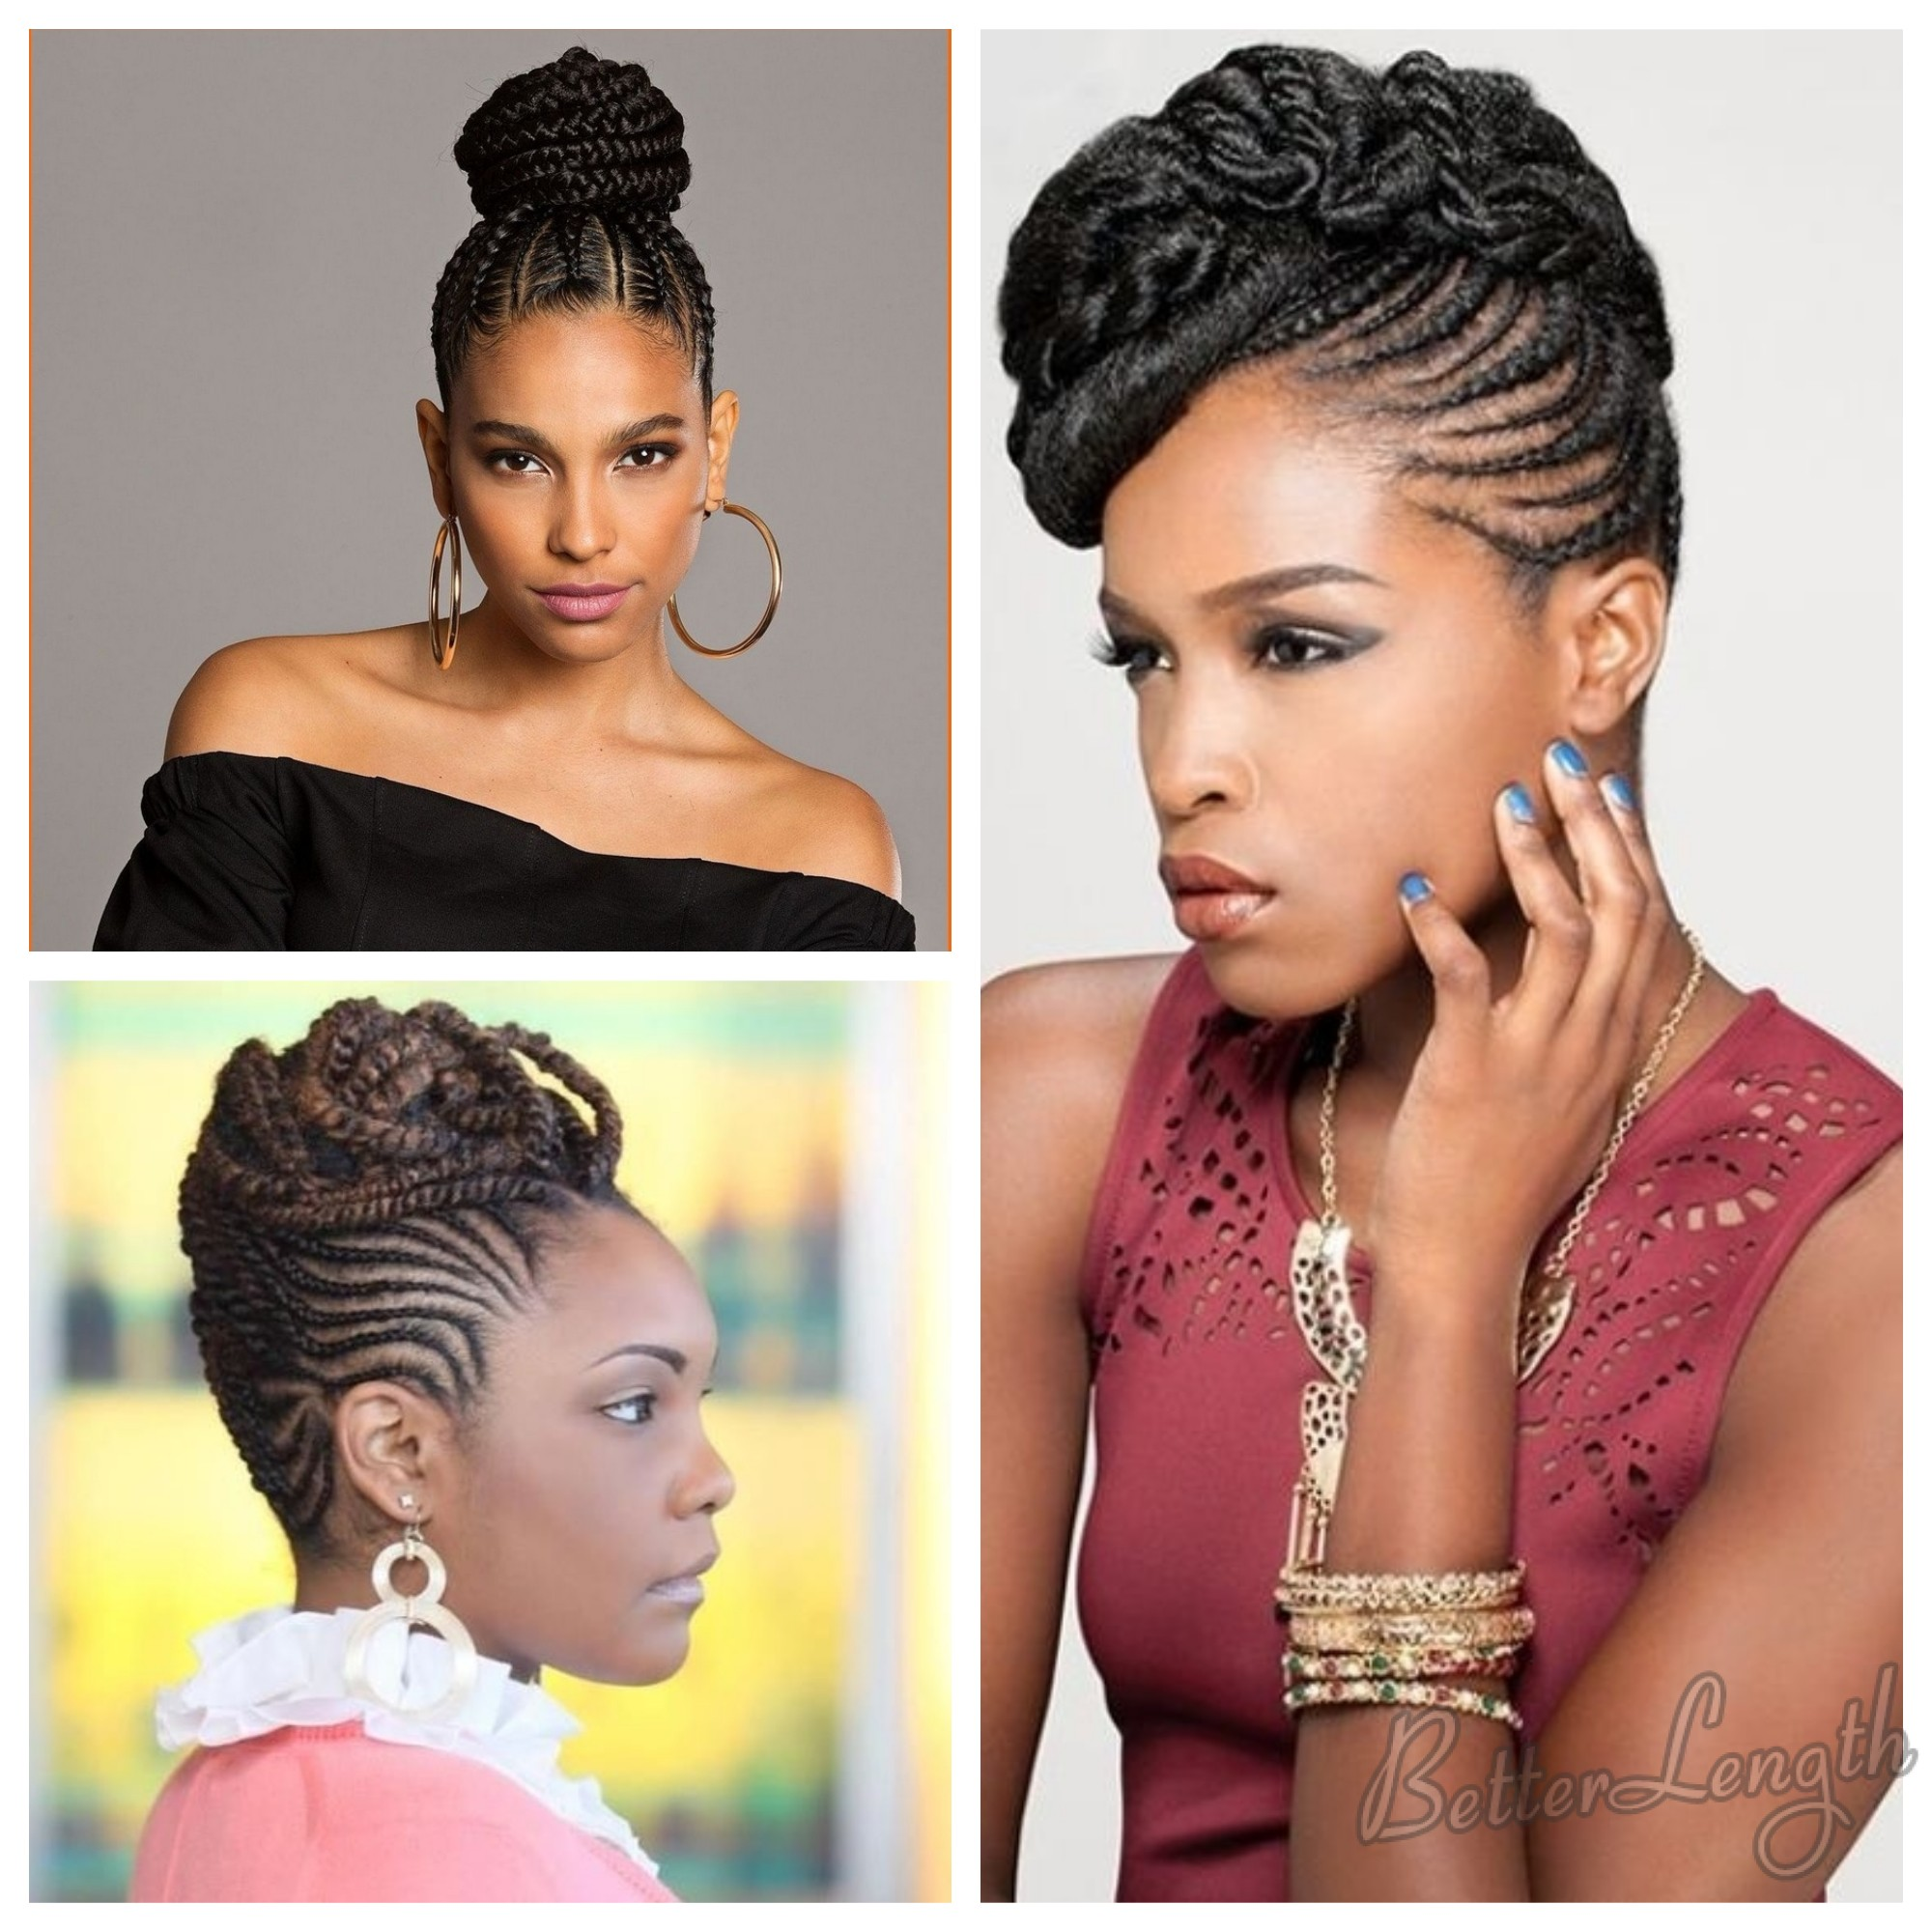 dope 2018 summer hairstyles for black women | betterlength hair